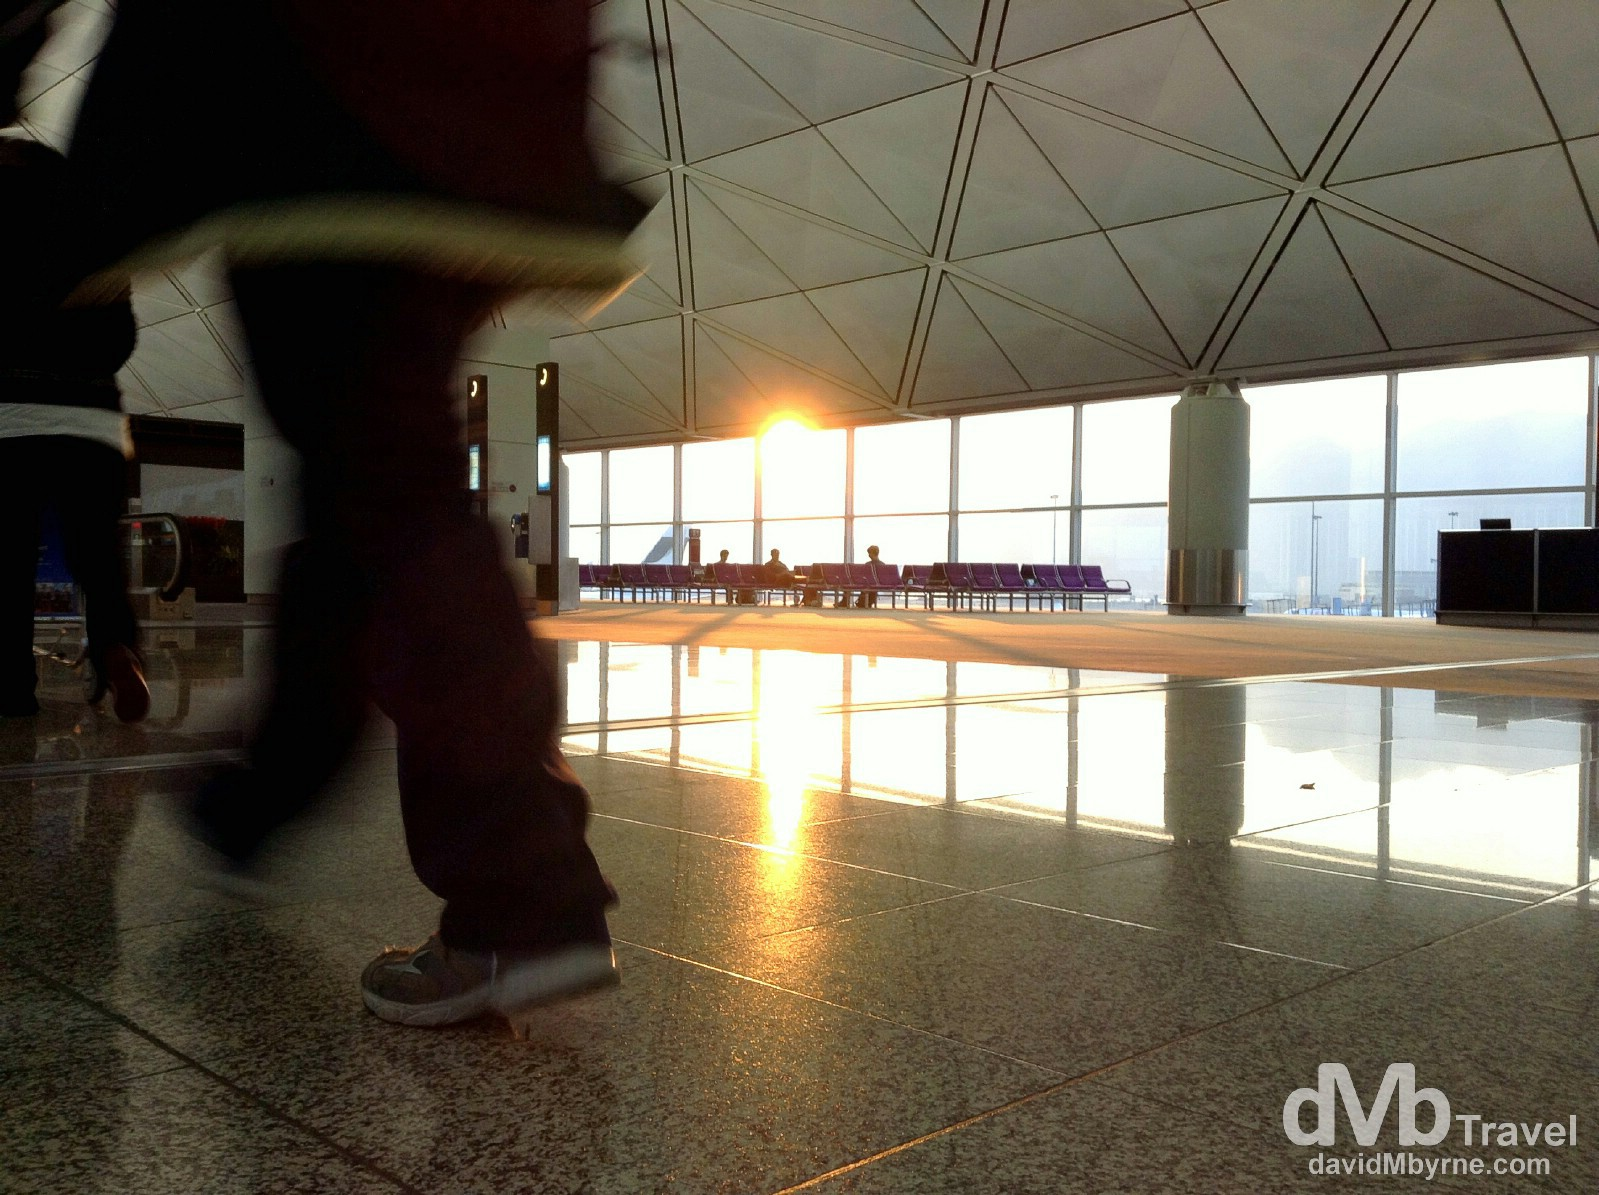 Sunrise as seen from a transit lounge in Hong Kong International Airport en route to Seoul, South Korea. January 17th 2013 (iPod)